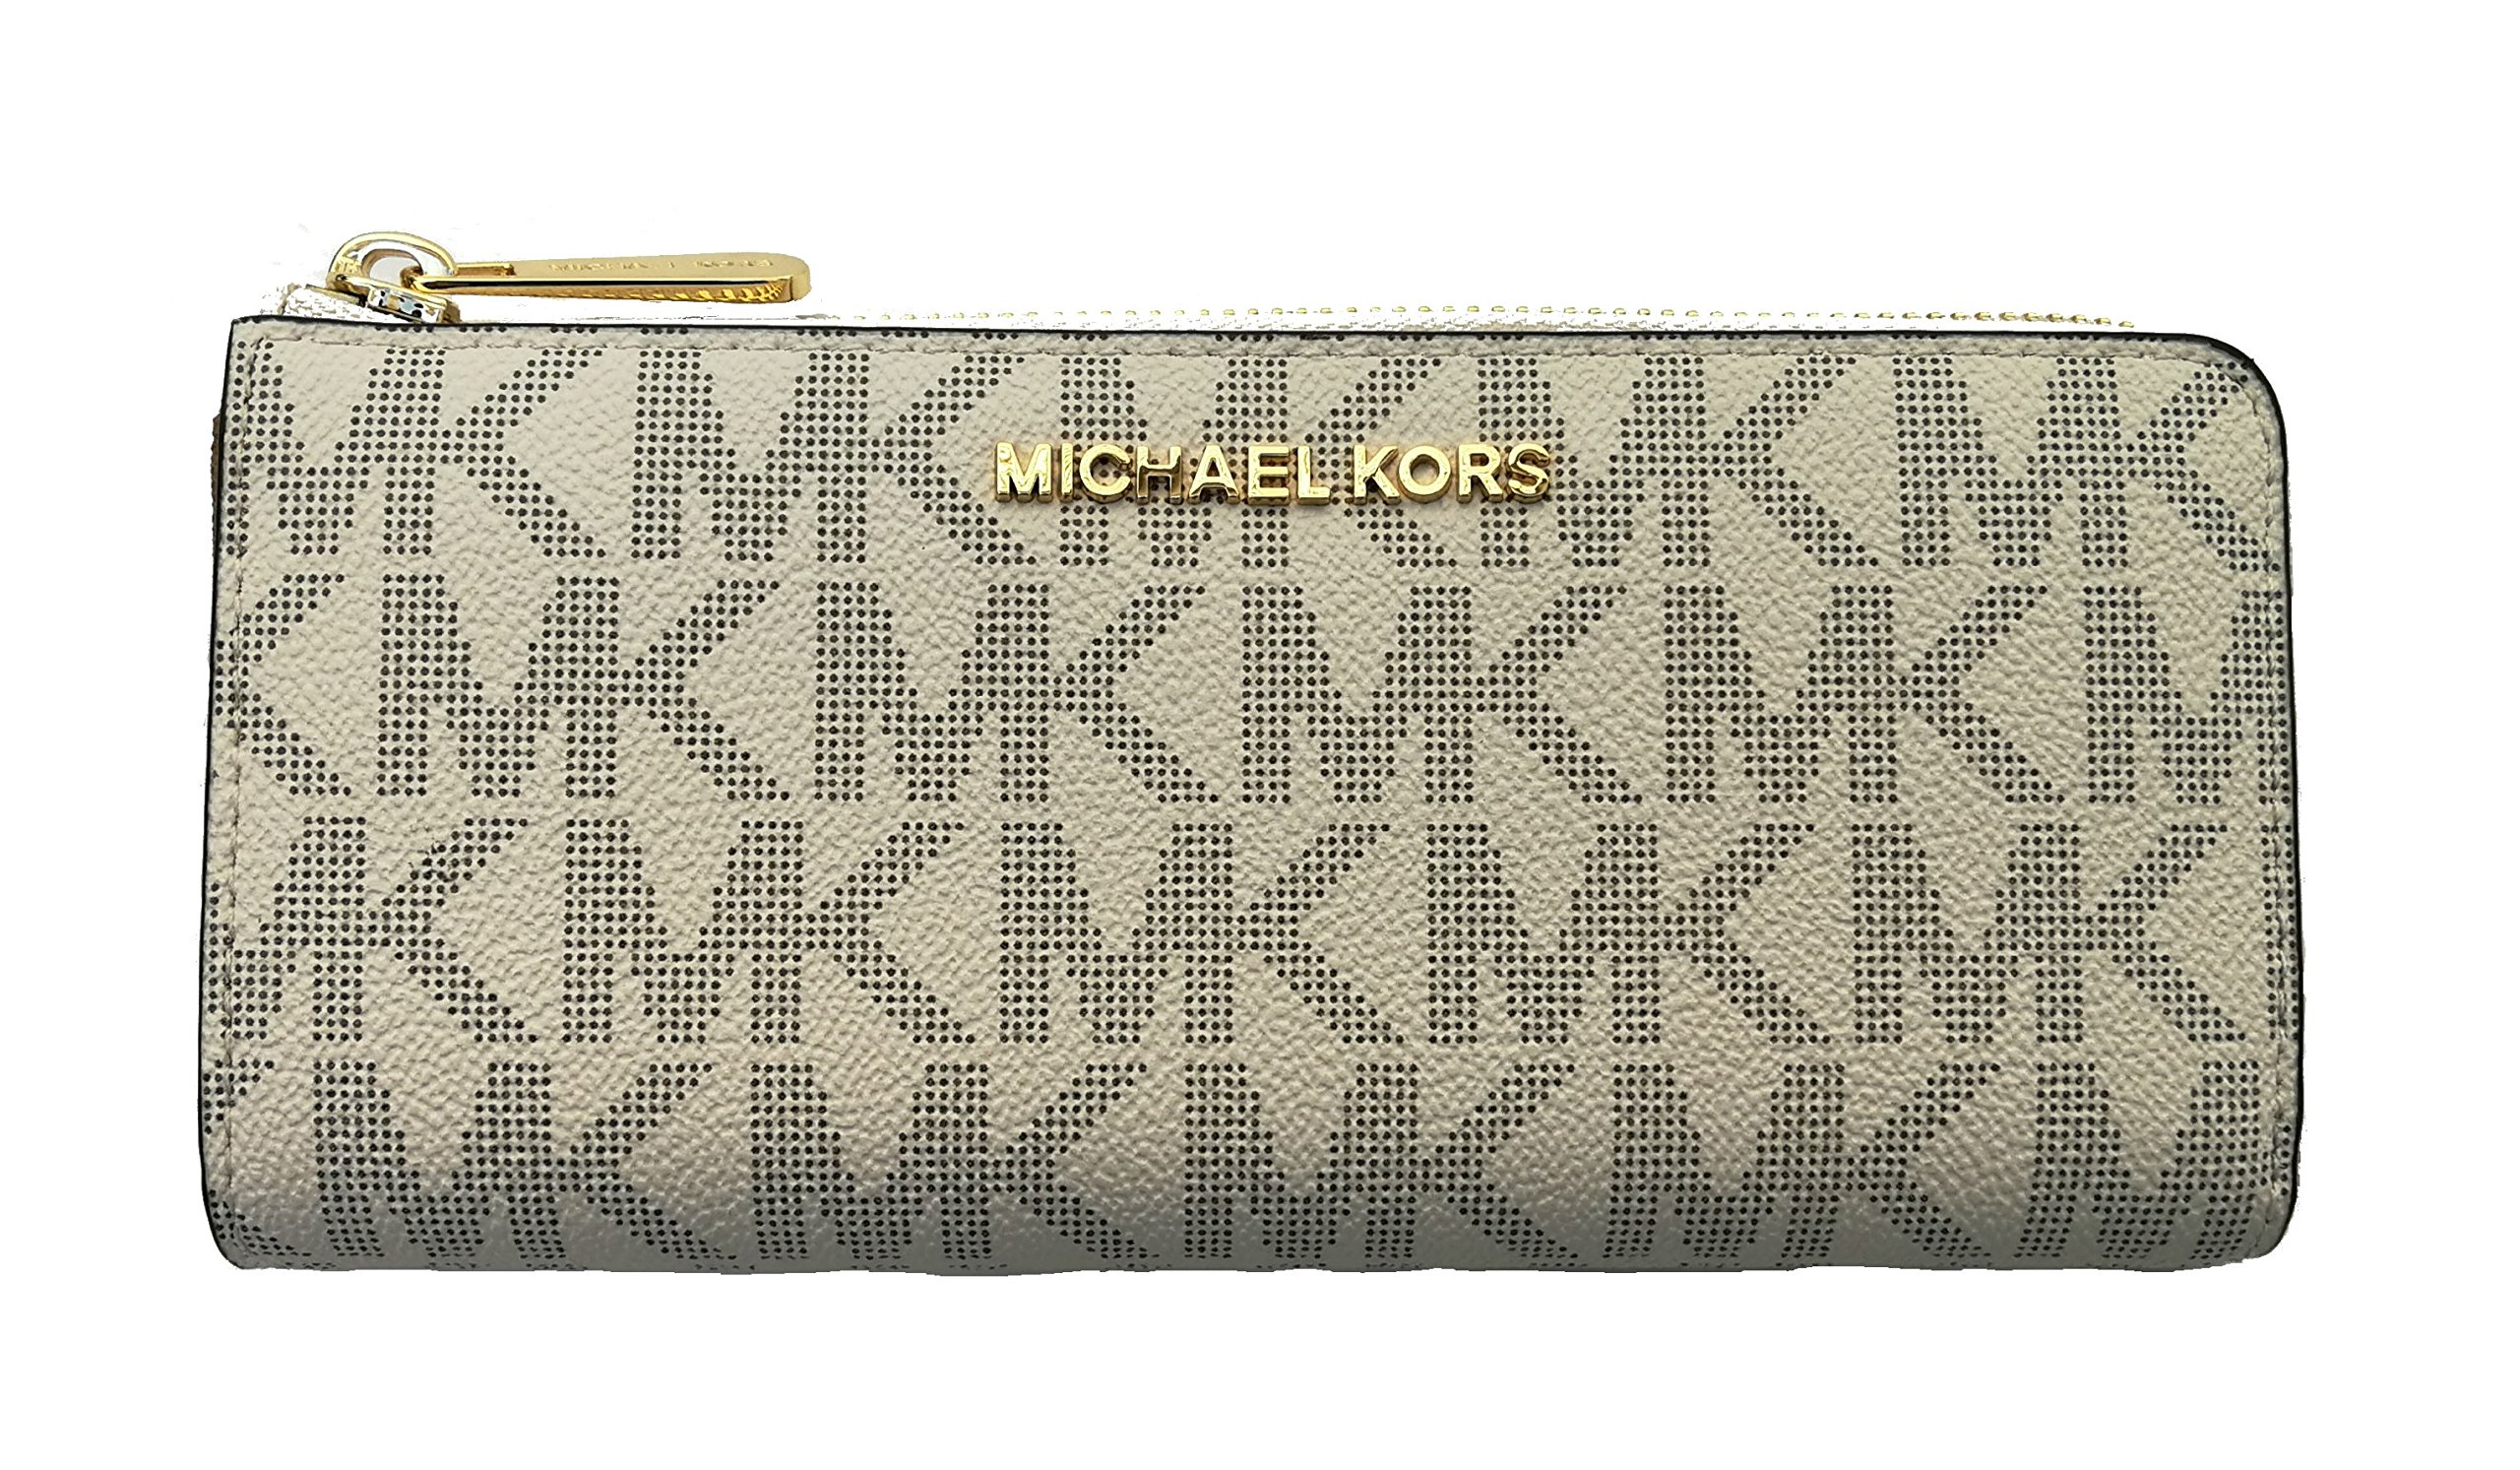 Michael Kors Bedford Large Three Quarter Zip Around Pebbled Leather Wallet Vanilla/Acorn by Michael Kors